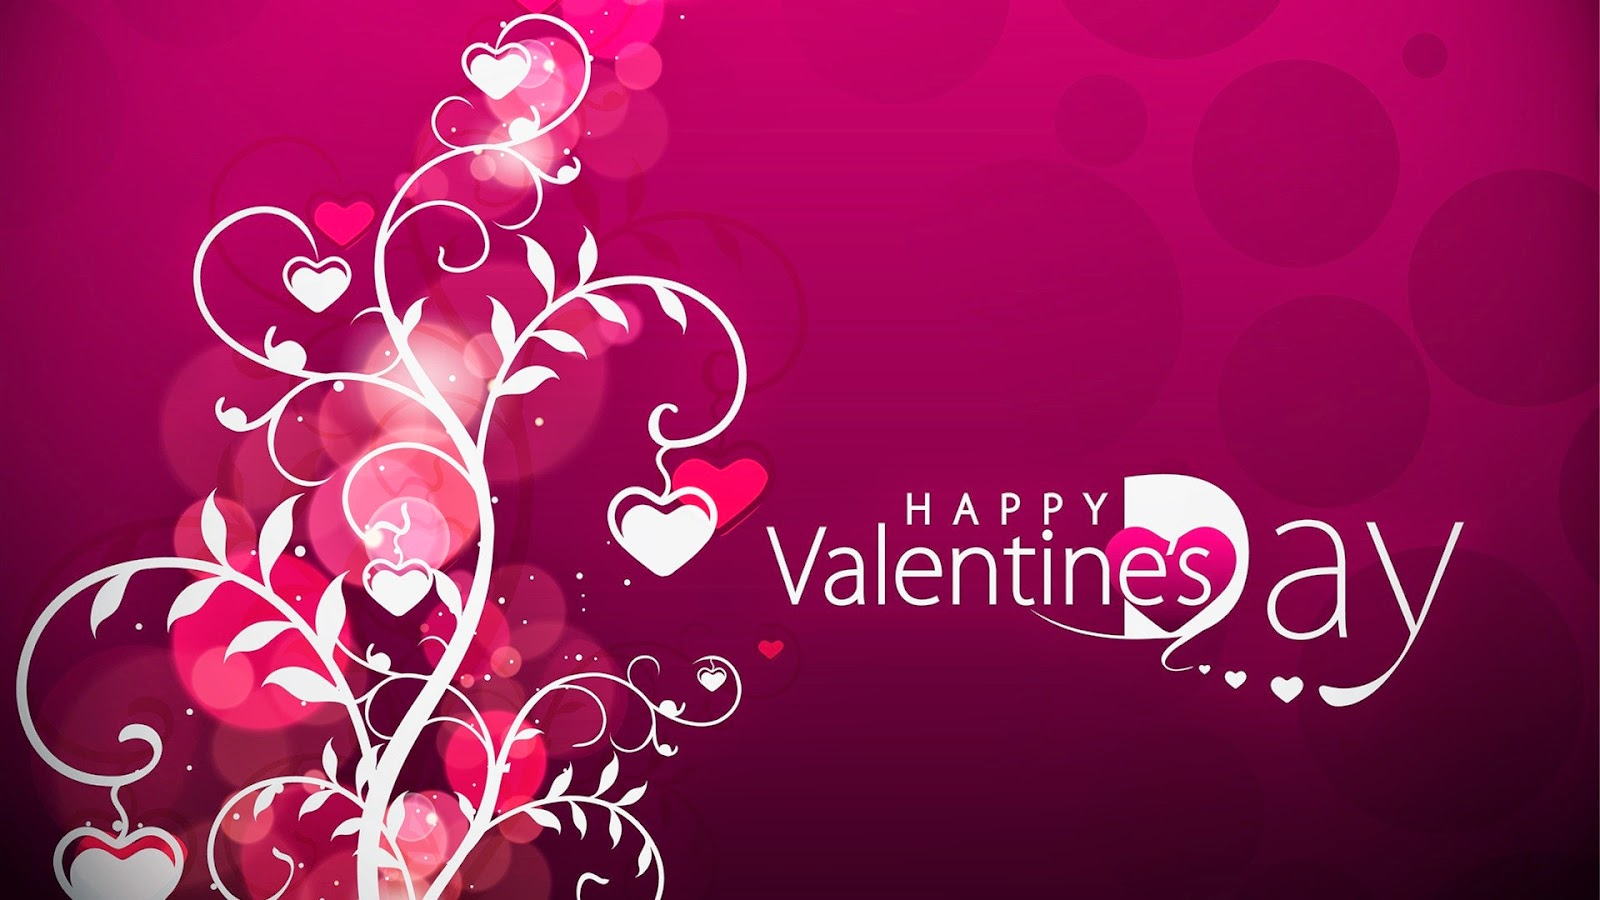 15 New Valentines Day Desktop Wallpapers for 2015   Brand Thunder 1600x900